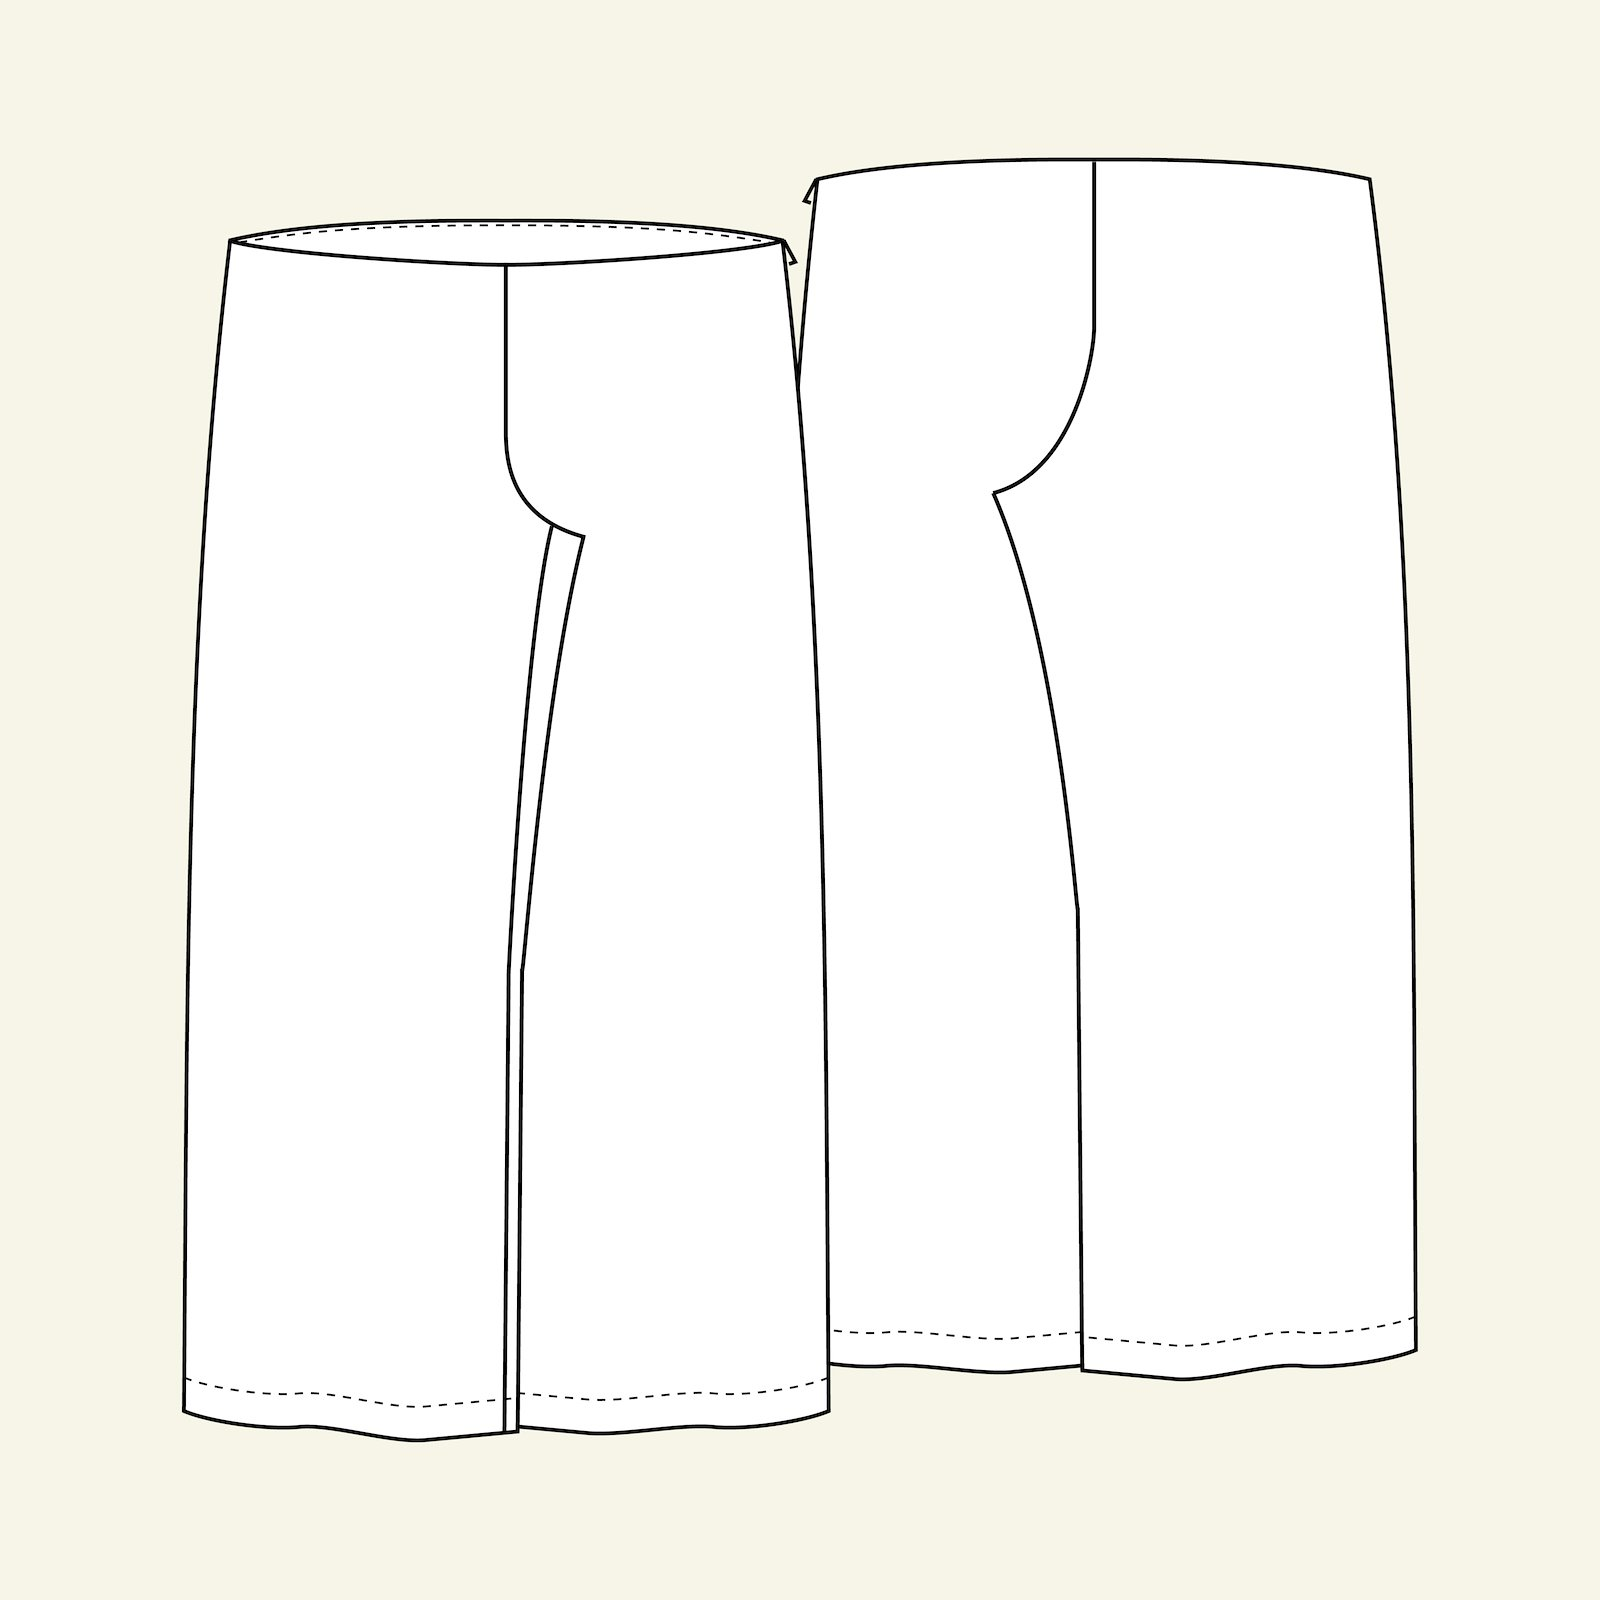 Boot cut trousers, 56/28 p70005_pack